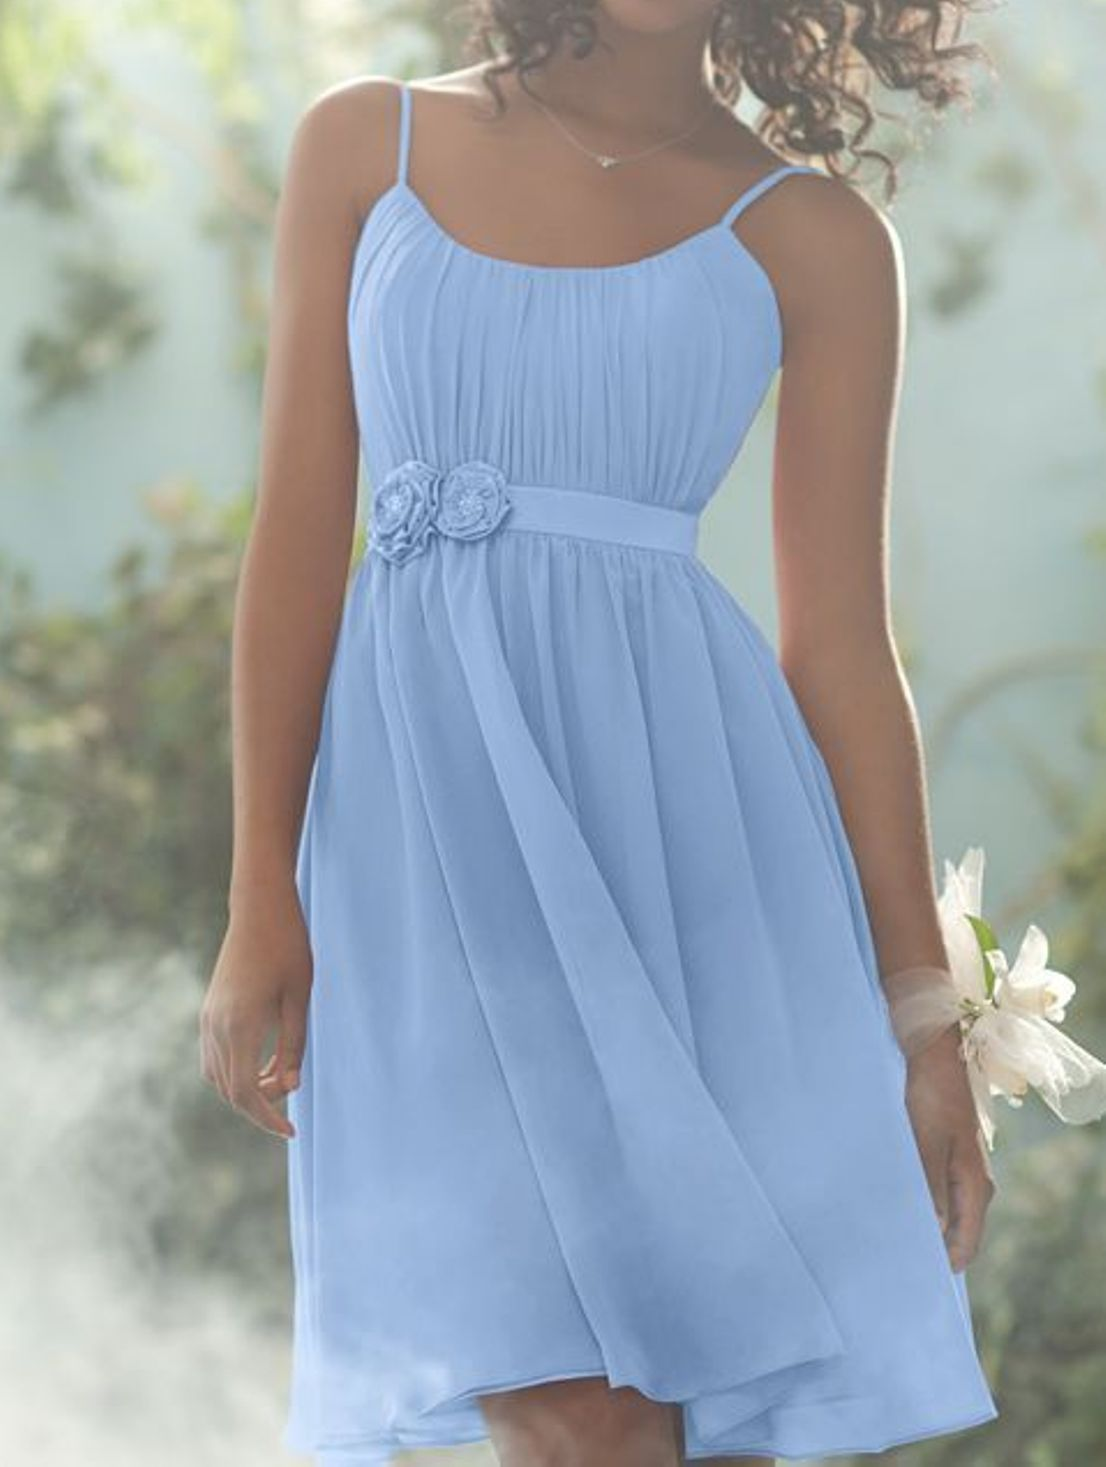 Blue junior bridesmaid dresses dresses pinterest for Dresses for juniors for weddings